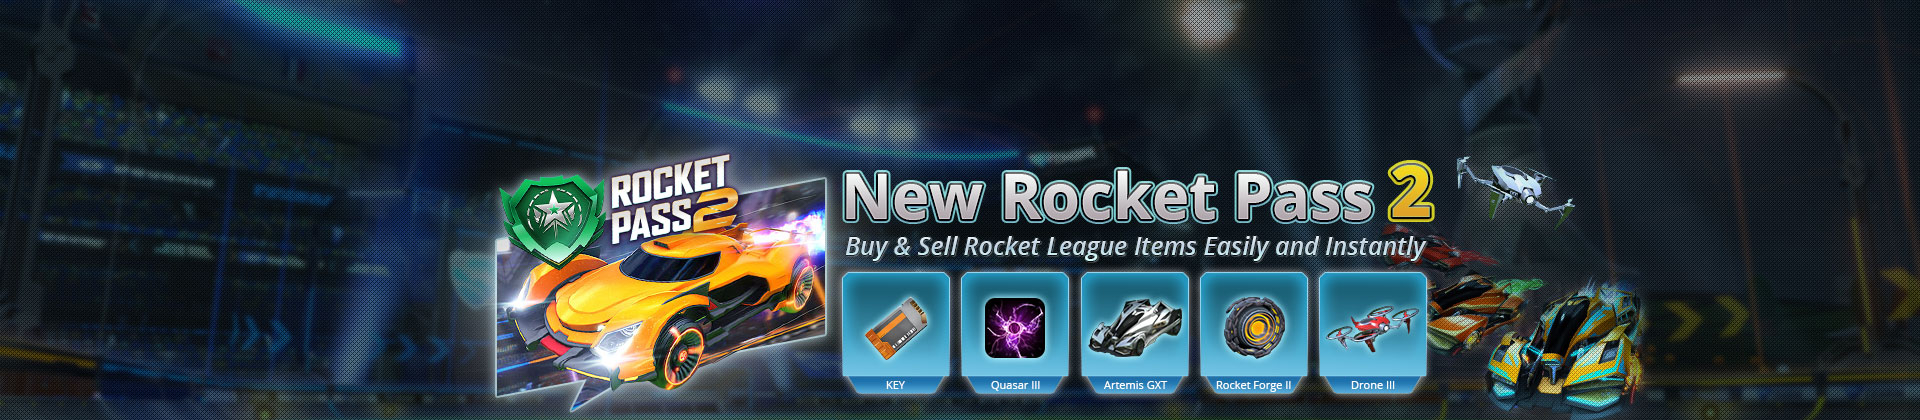 Rocket Pass 2 Items For Sale